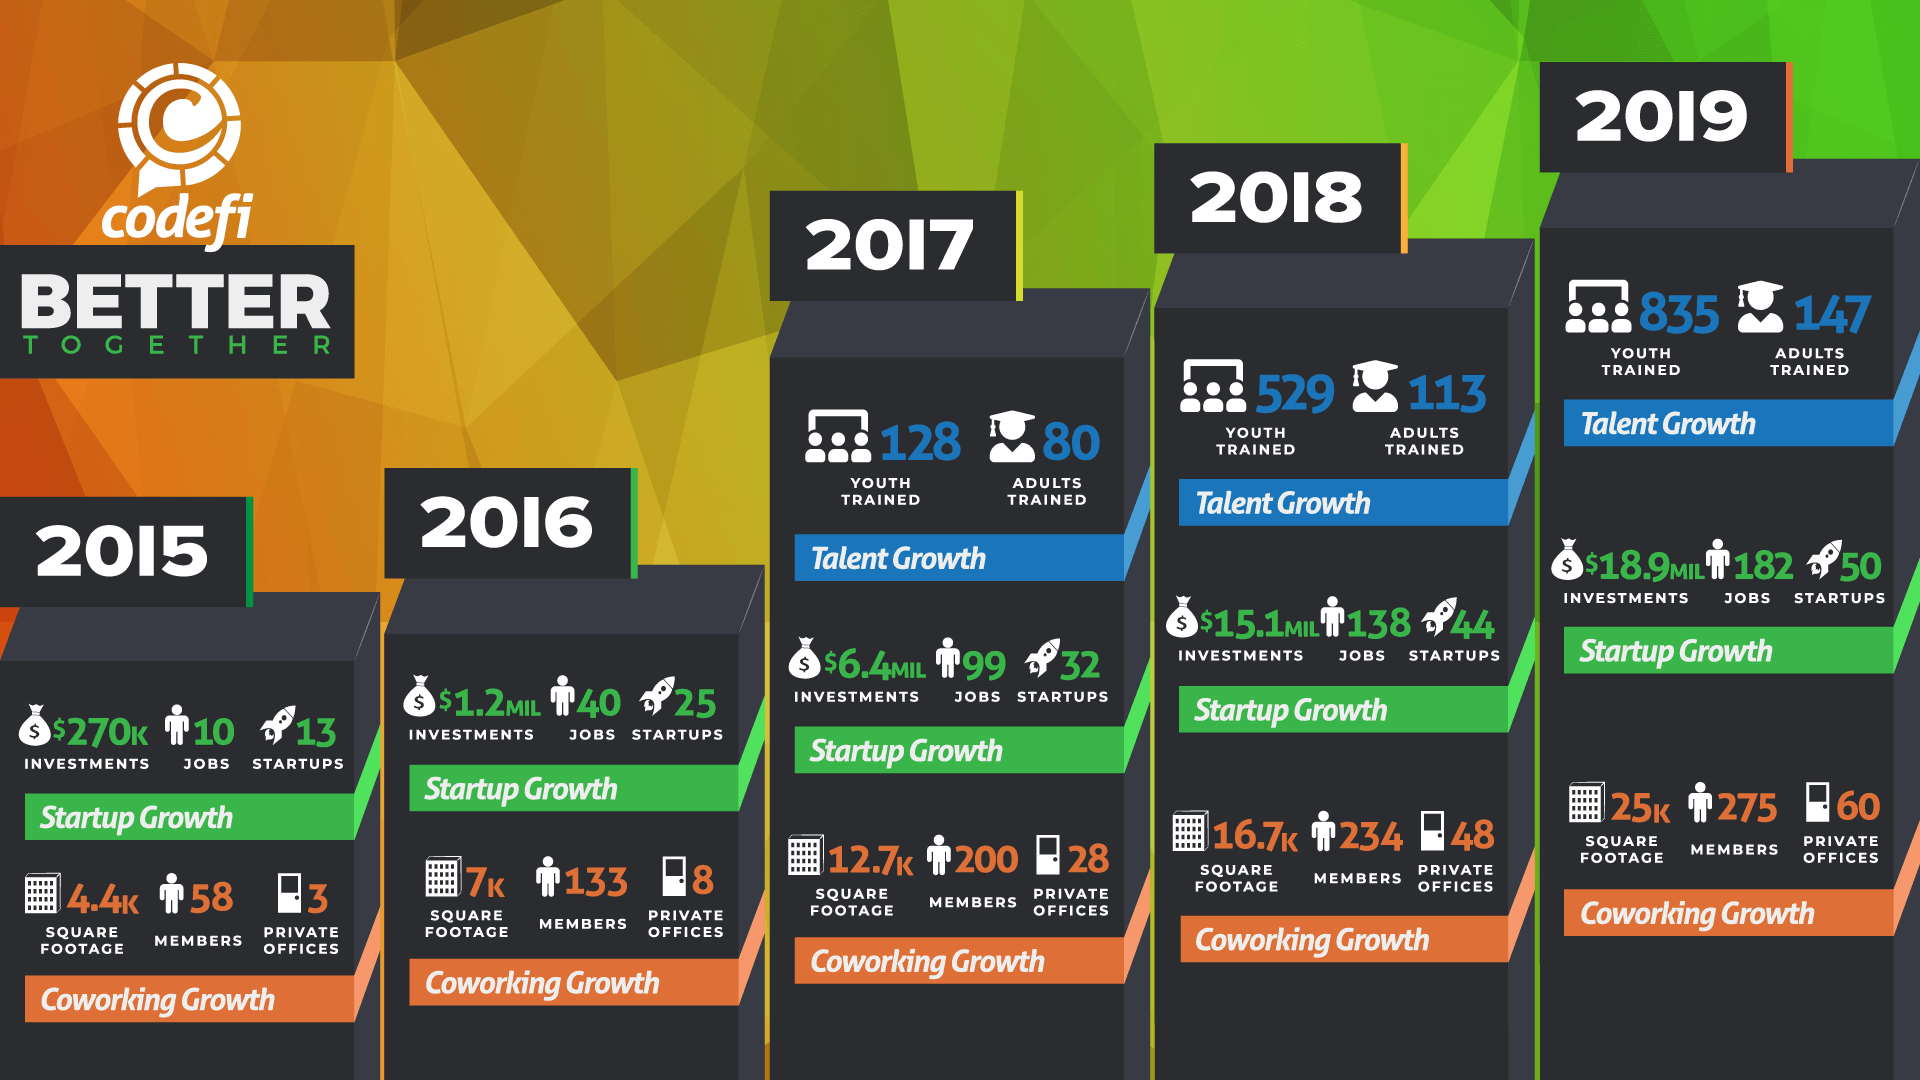 Codefi By the Numbers, 2015-2019